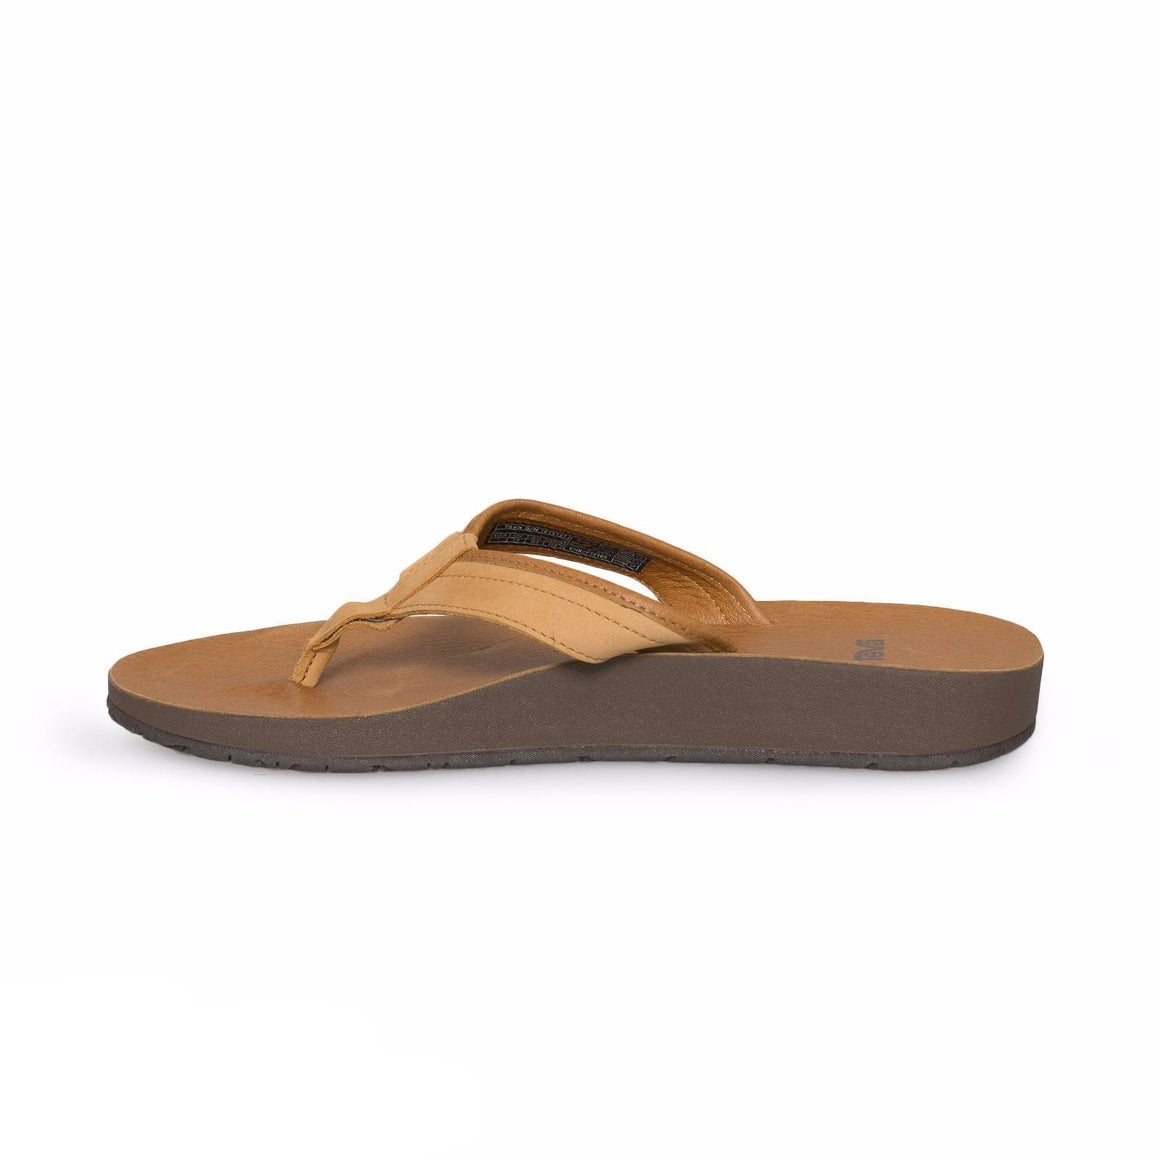 Teva Azure Flip Leather Tan Flip Flops